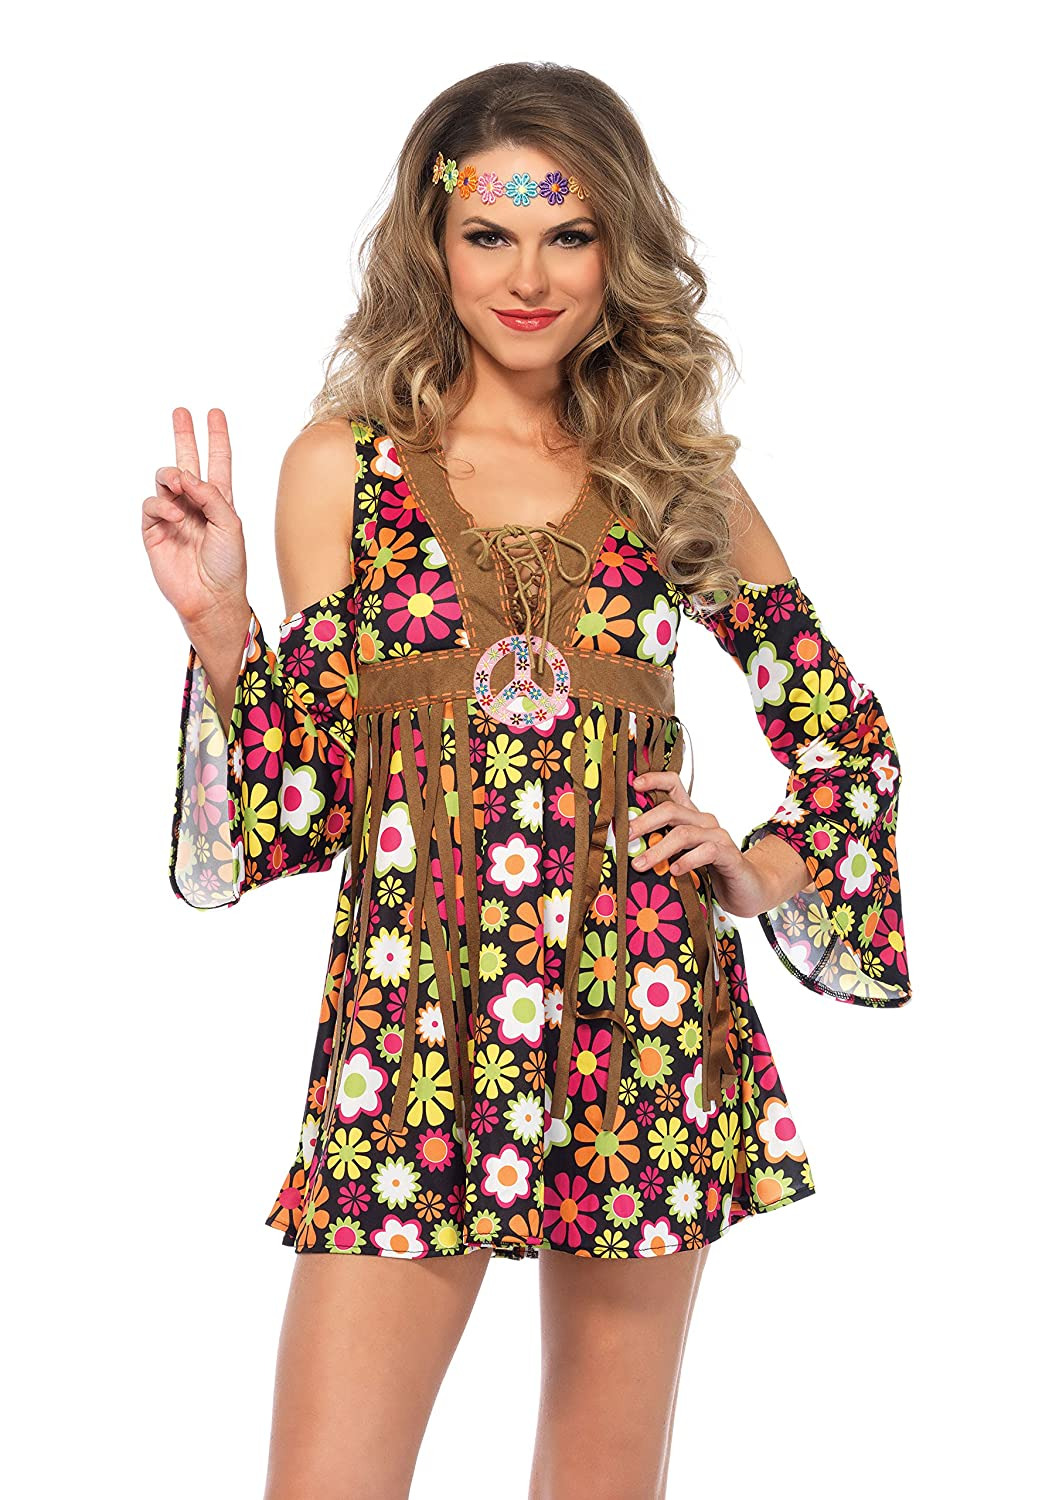 Hippie Dress | Long, Boho, Vintage, 70s Leg Avenue Womens Starflower Hippie Costume $24.89 AT vintagedancer.com